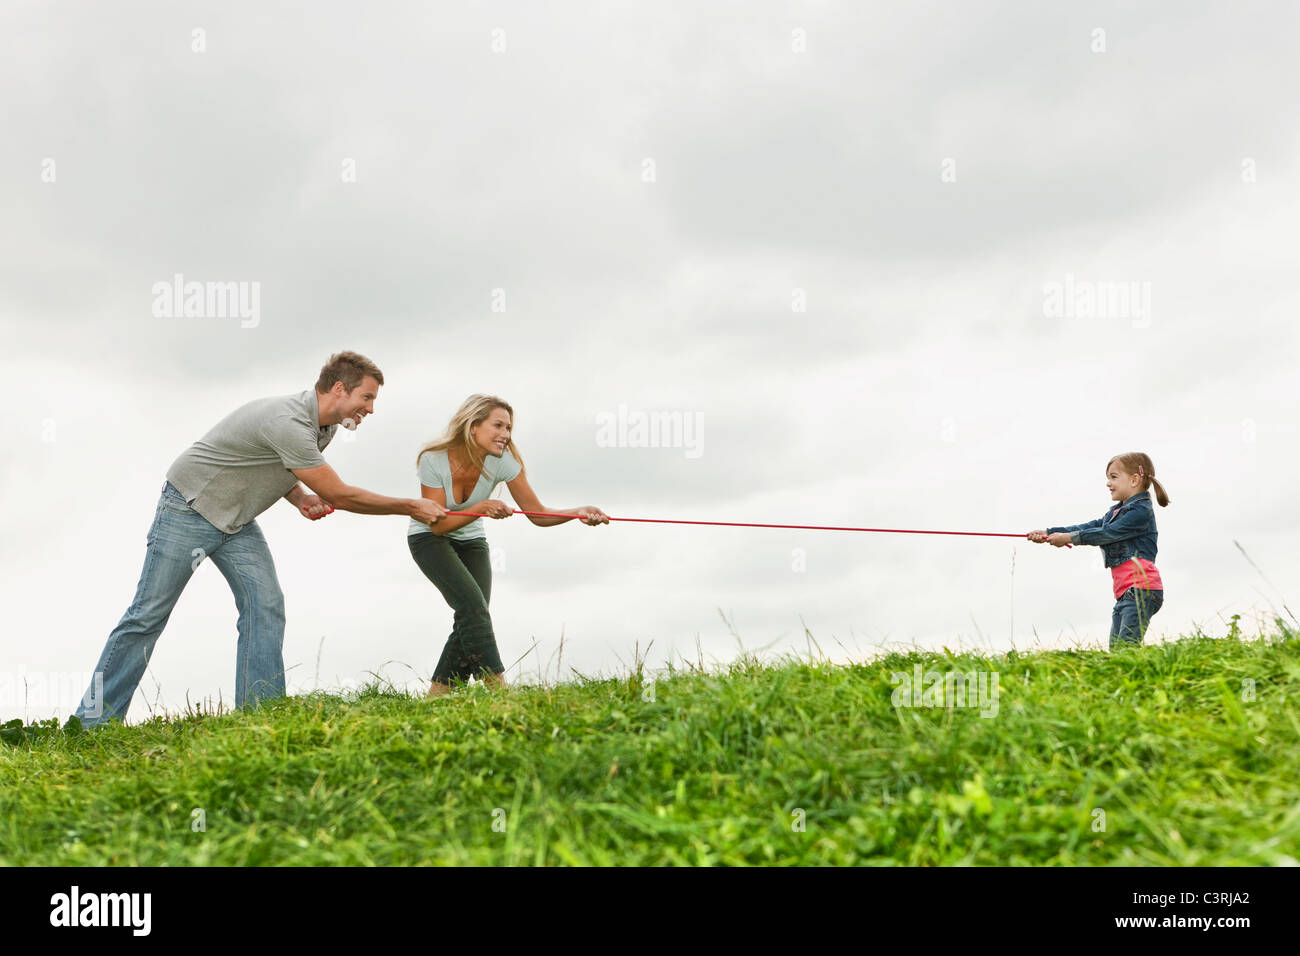 Germany, Cologne, Parents playing tug of war with girl (2-3 Years) - Stock Image